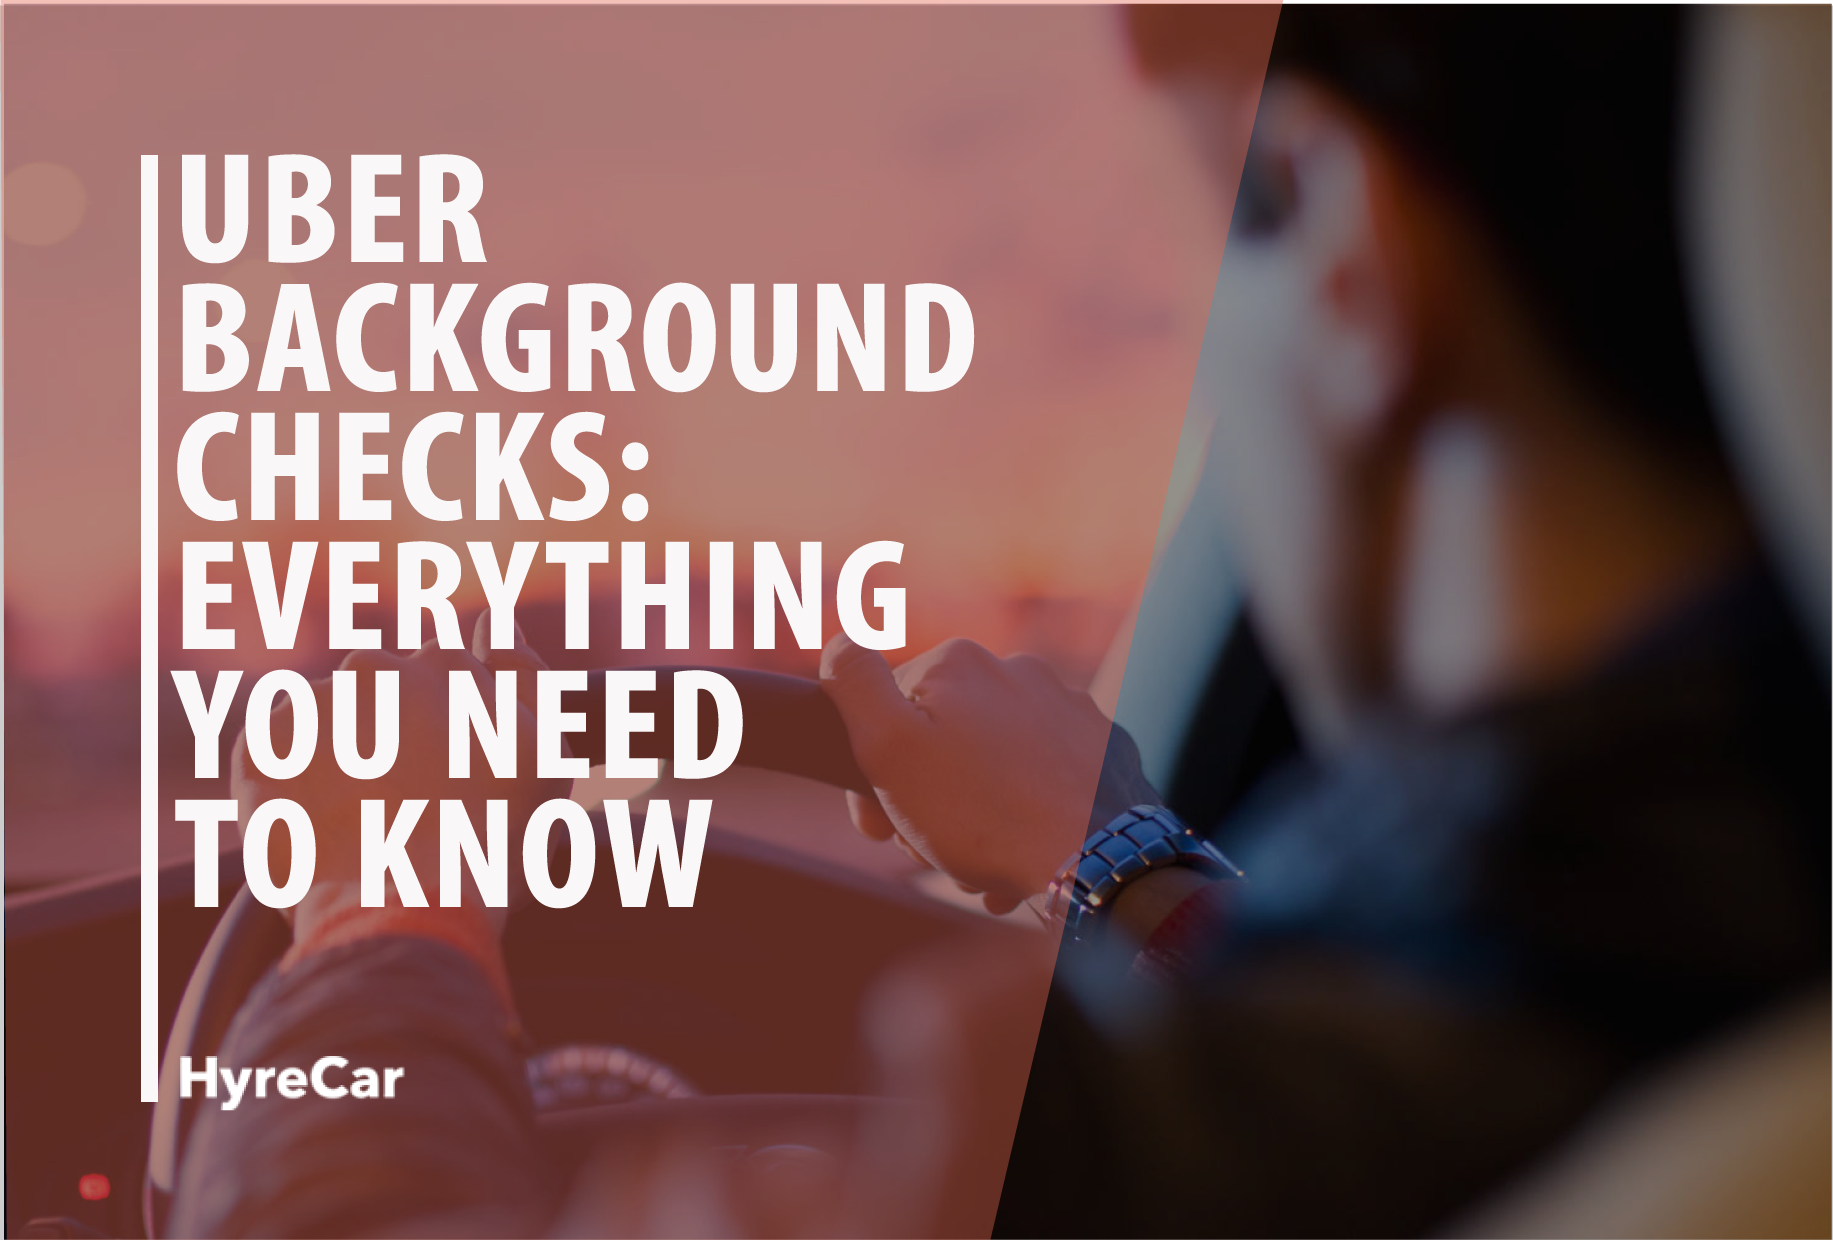 Uber Background Checks: Everything You Need To Know